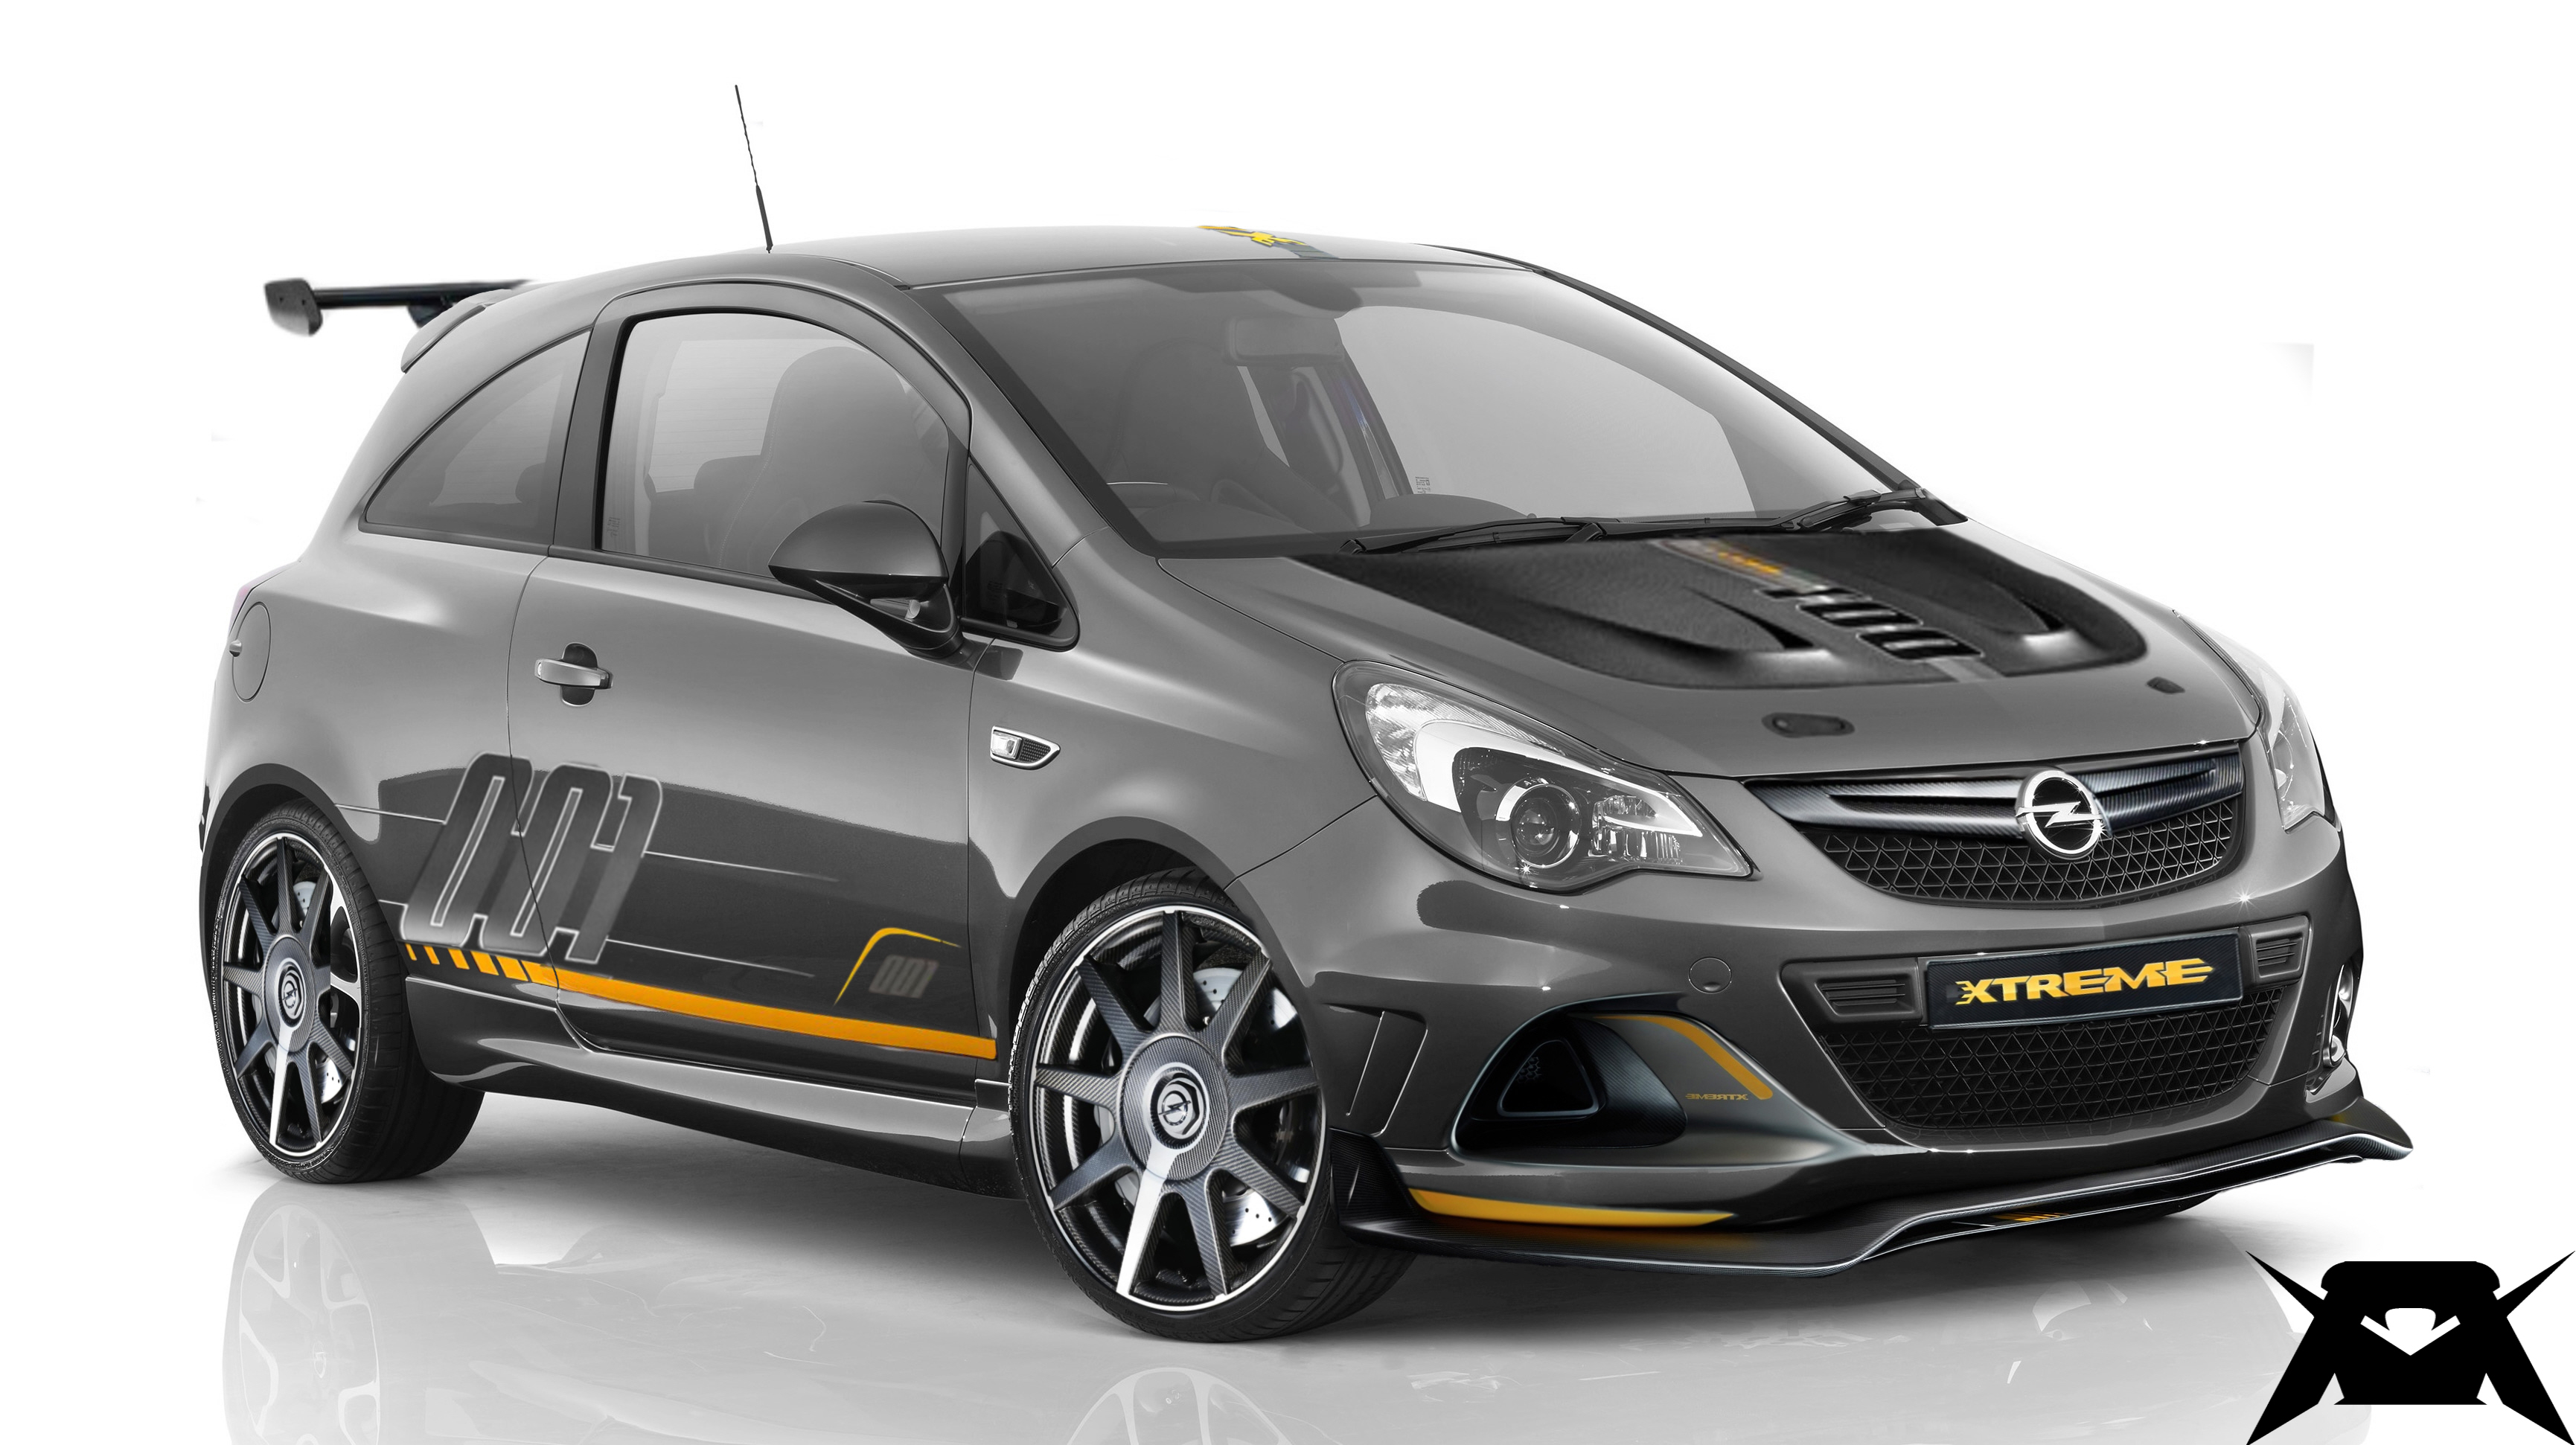 opel corsa opc extreme by simonk98 on deviantart. Black Bedroom Furniture Sets. Home Design Ideas